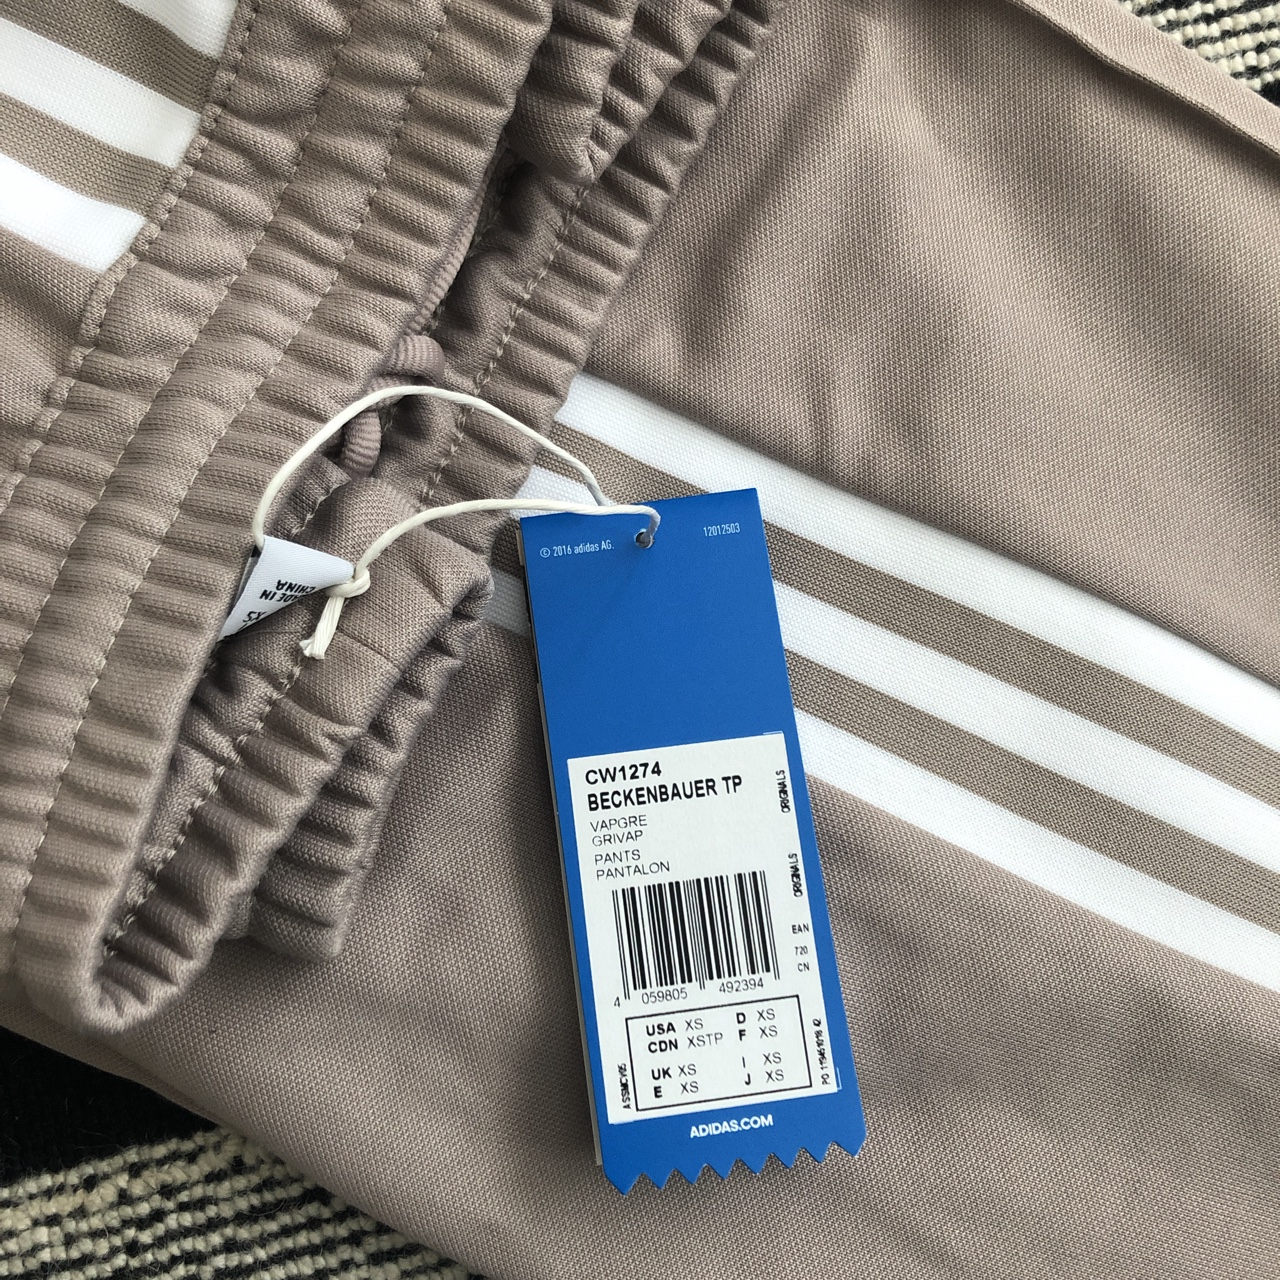 BRAND NEW! Adidas Bekenbauer Track Pants! As seen on Depop